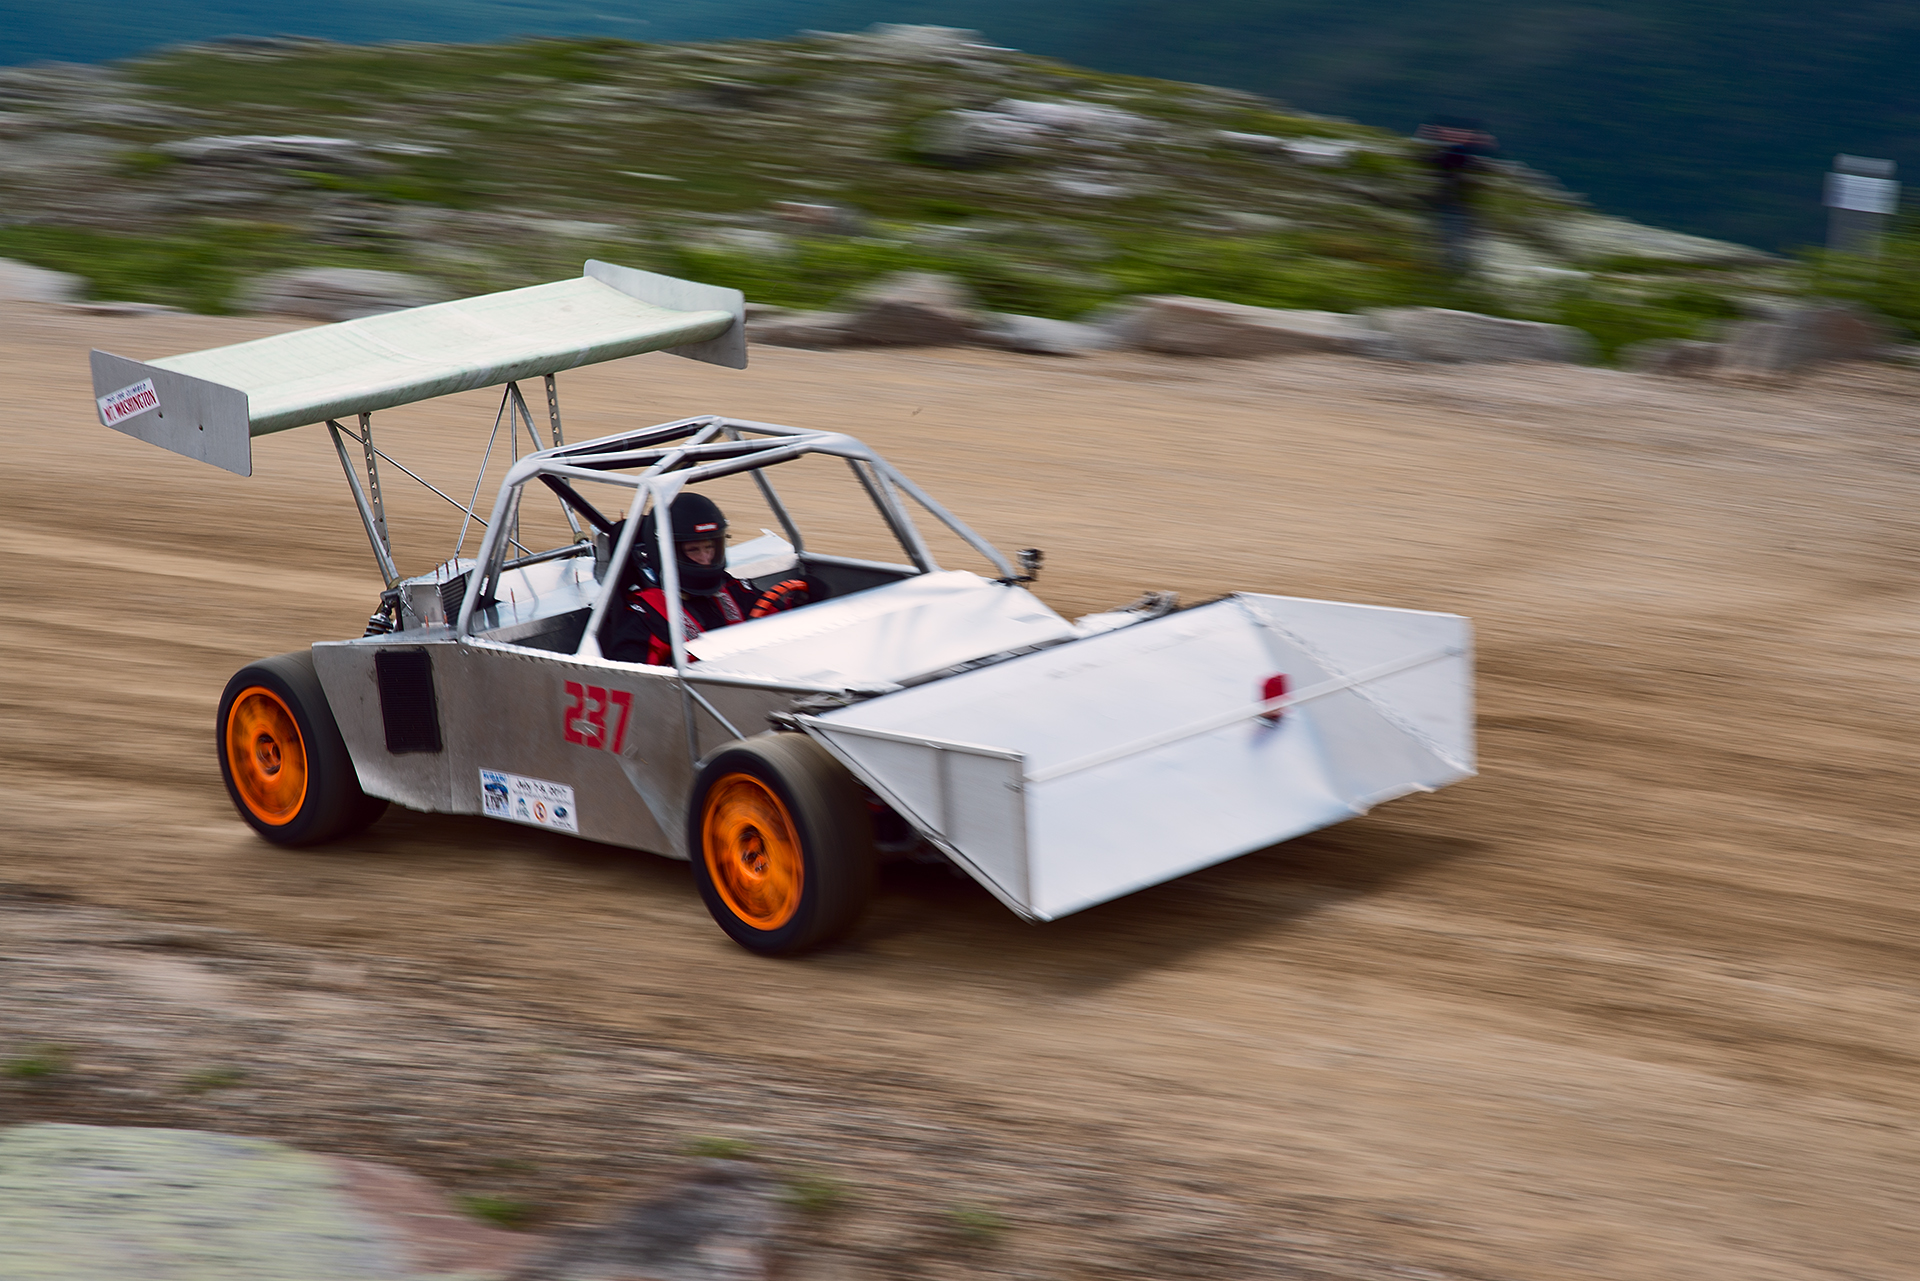 Car 237 at Climb to the Clouds 2017